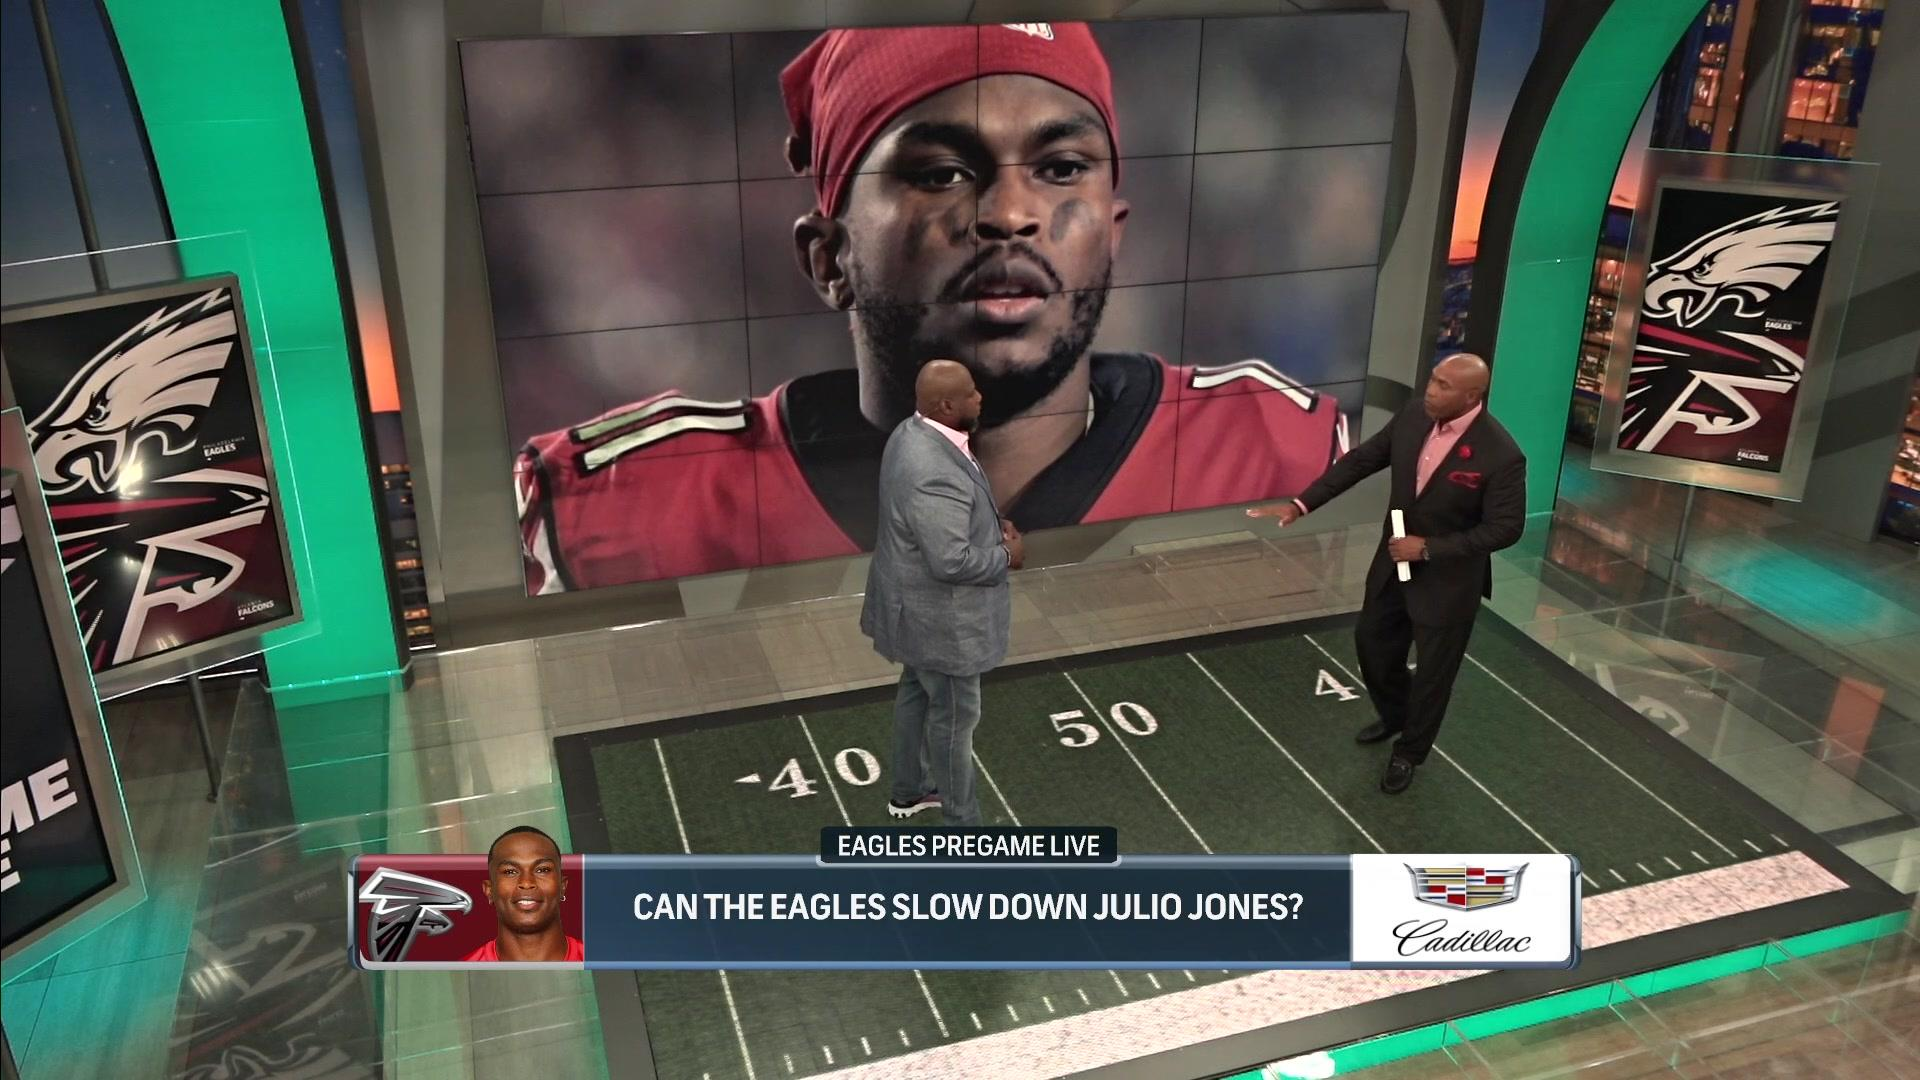 How can the Eagles slow down Julio Jones?